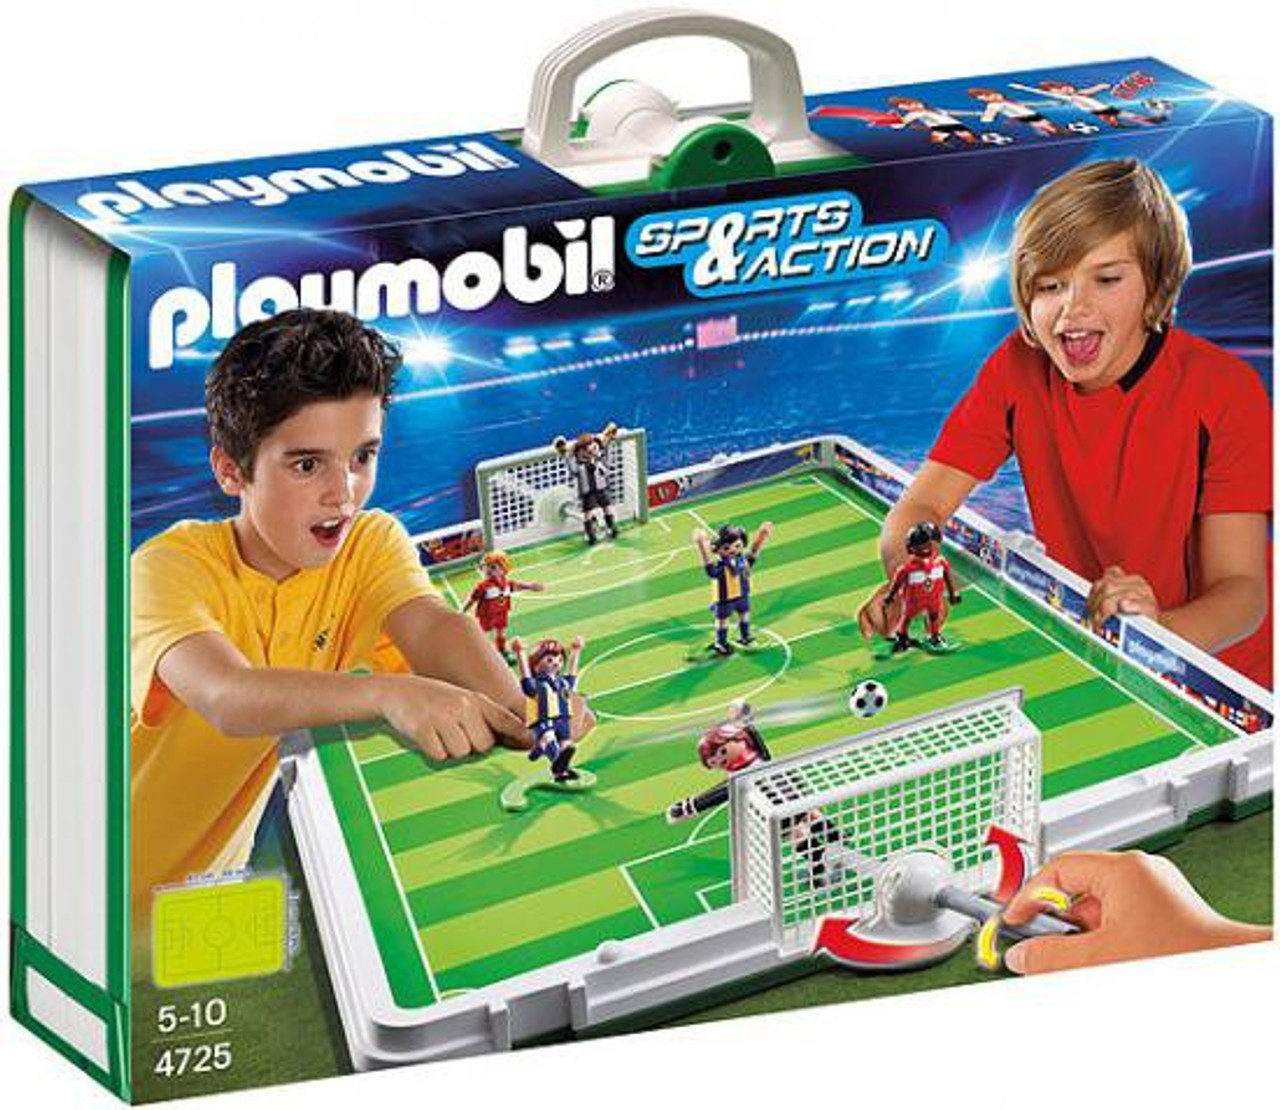 Playmobil Sports & Action Take Along Soccer Match Set #4725